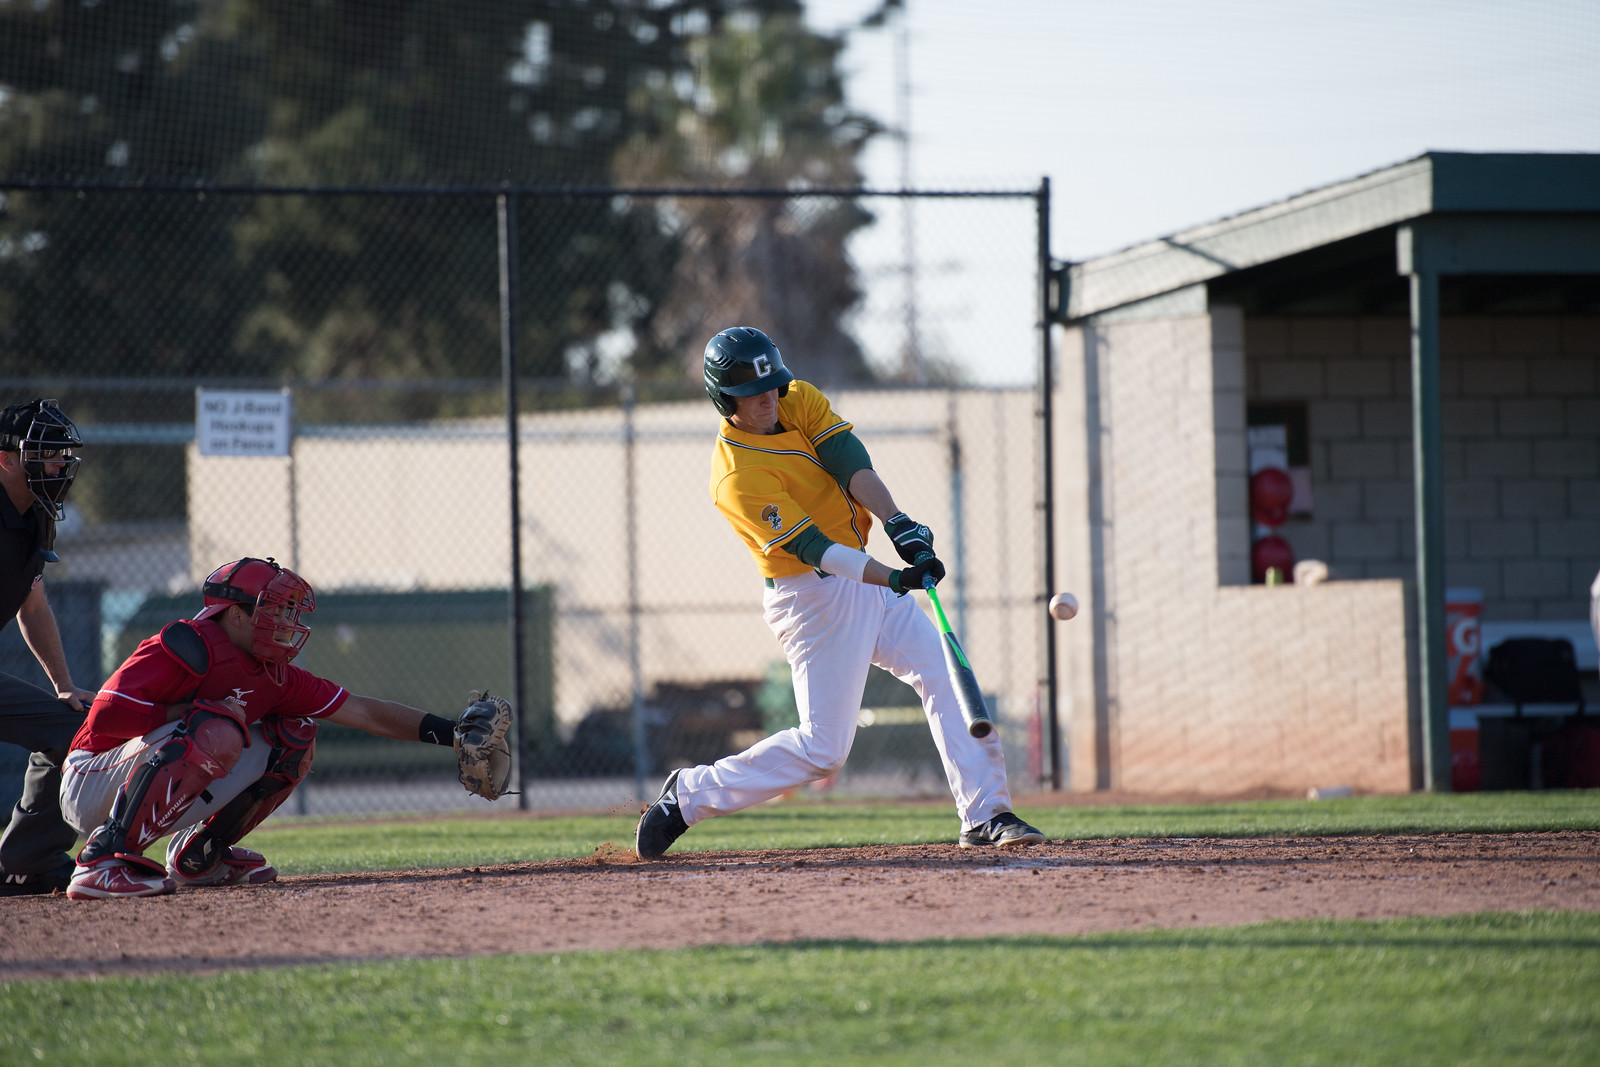 Baseball: Mattson Throws a Gem as the Offense Scores Late to Seal Victory